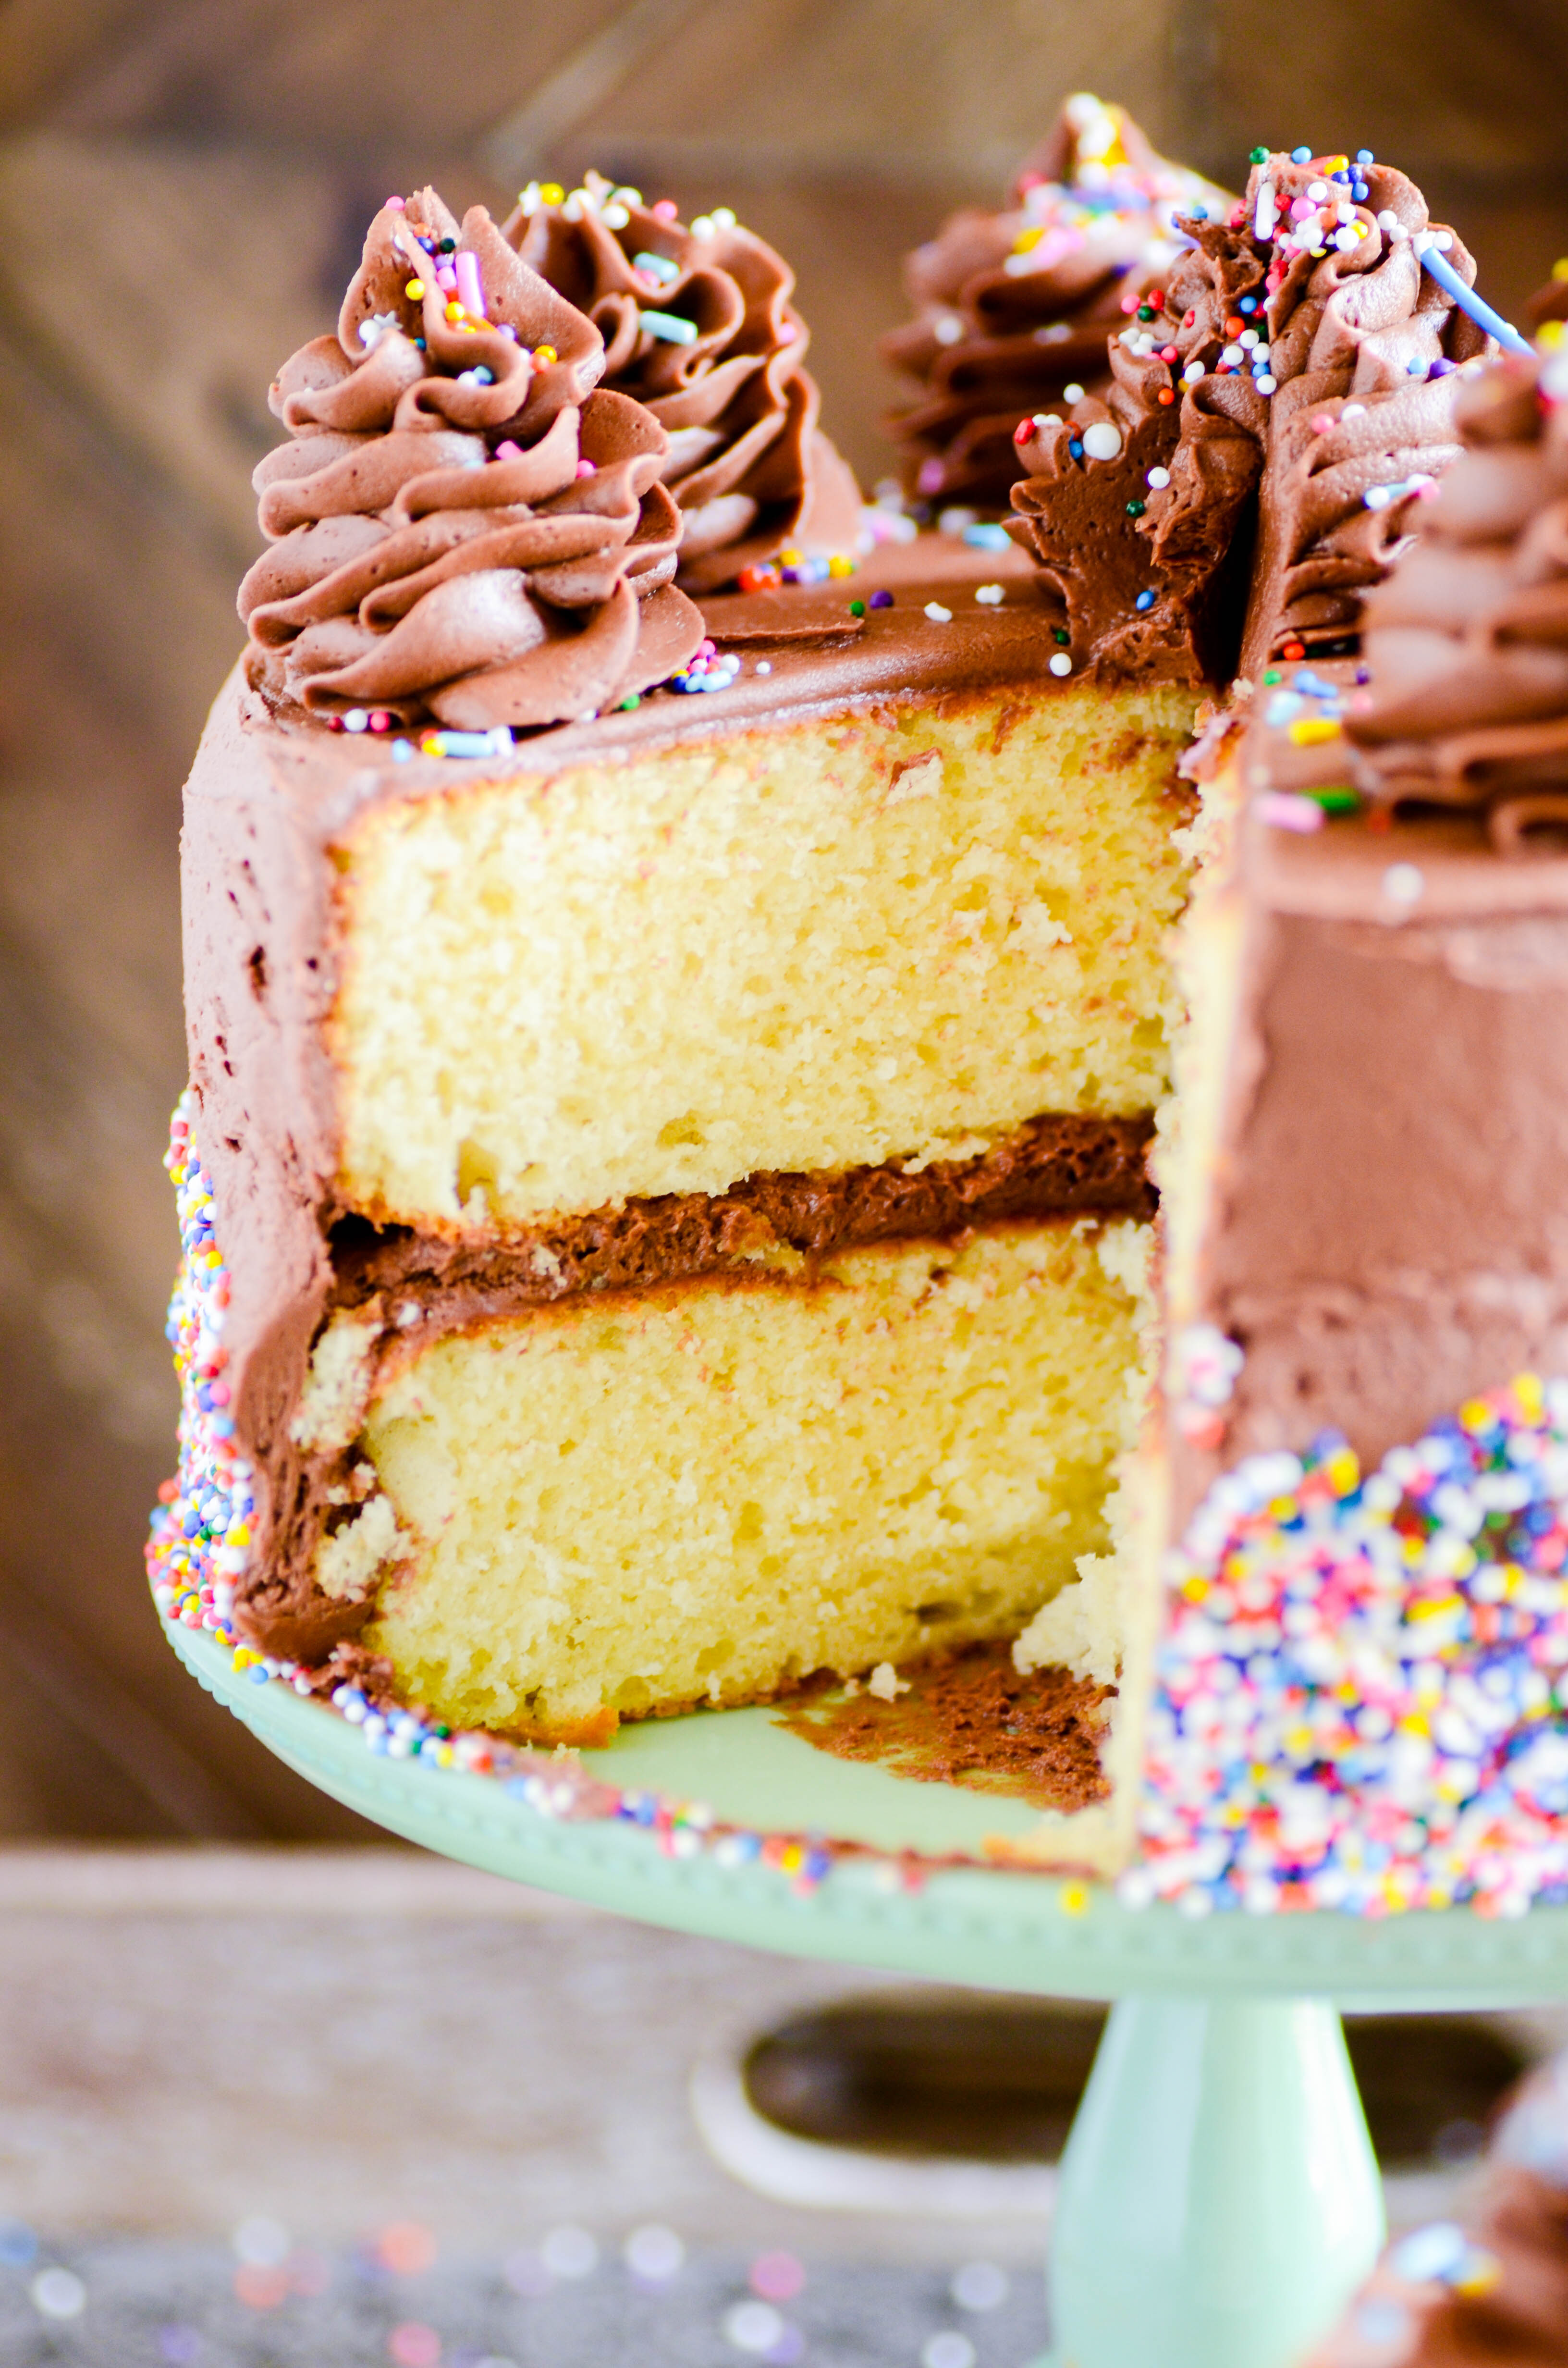 Another Yellow Birthday Cake with Chocolate Frosting - Something ...